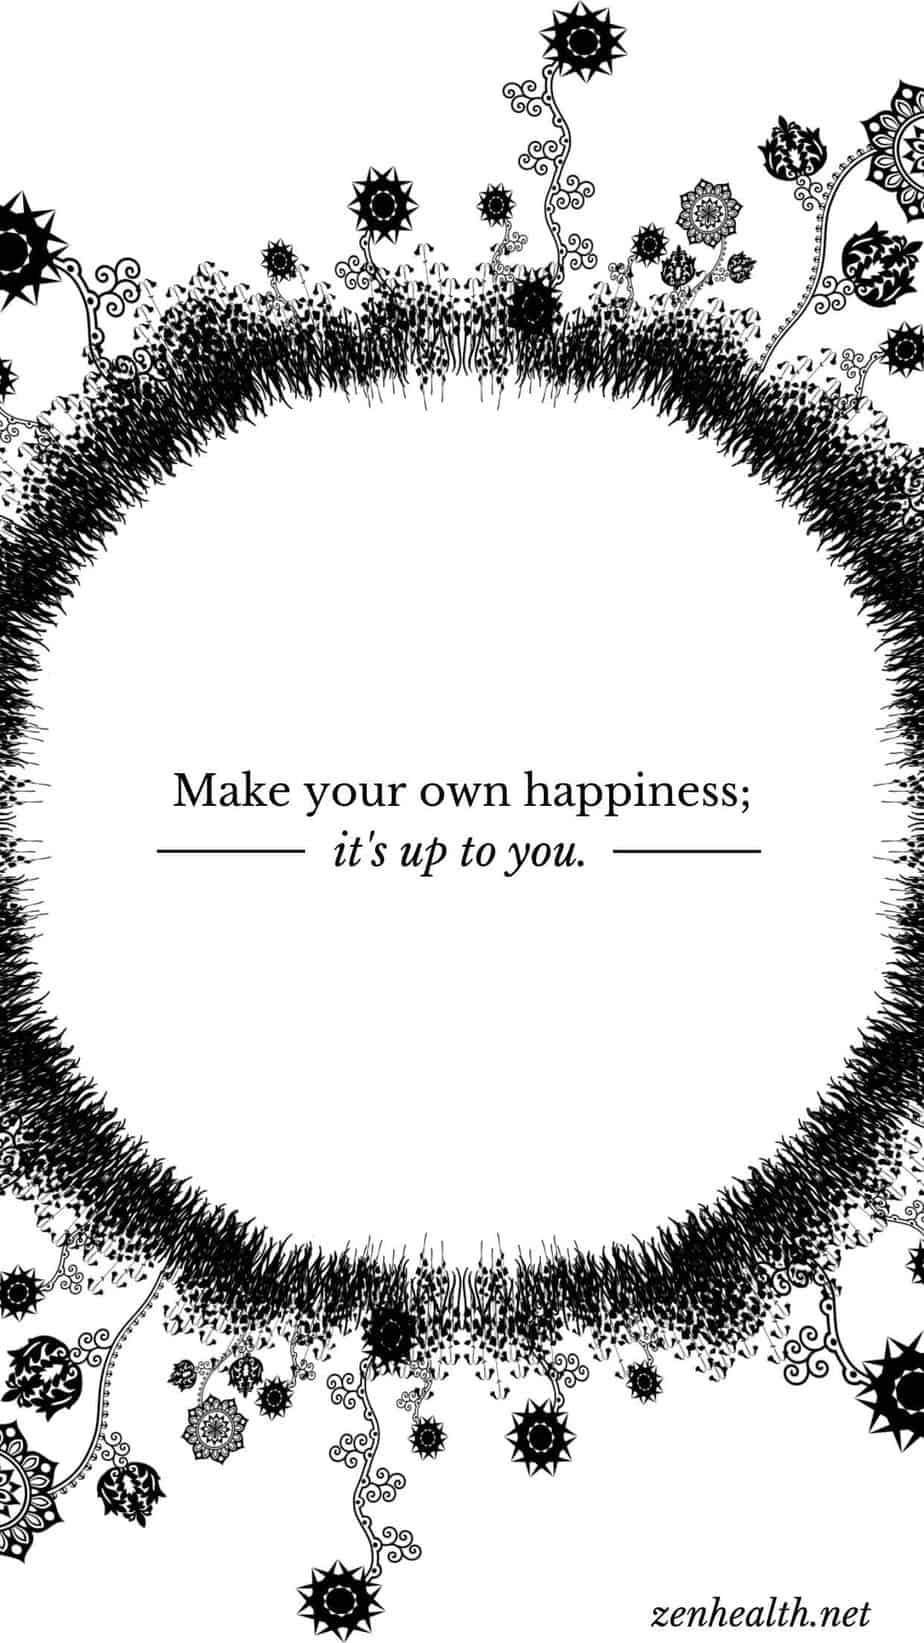 Happiness Quote: Make your own happiness; it's up to you.